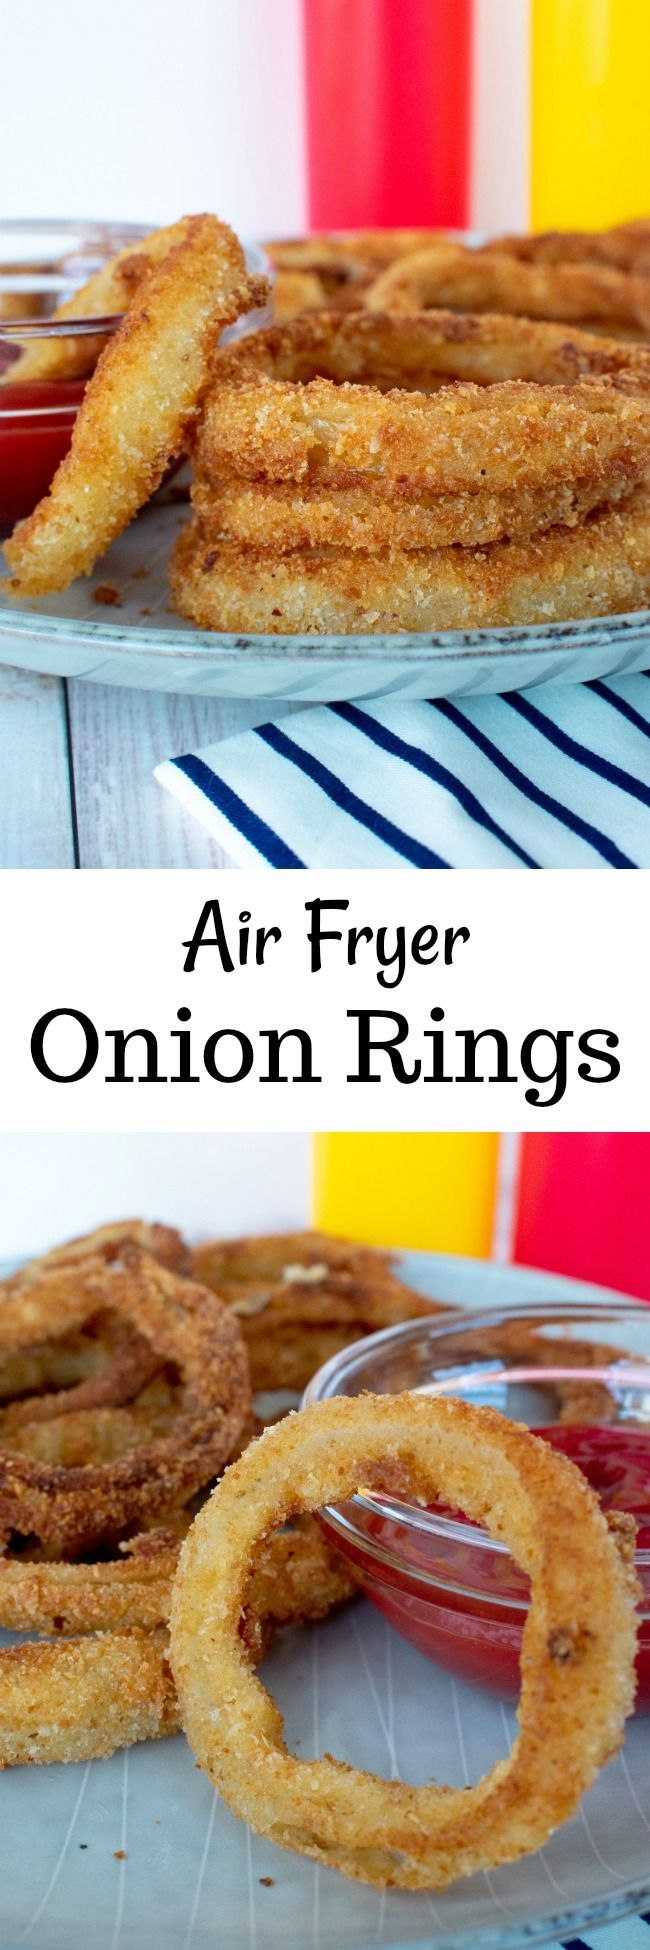 Air Fryer Onion Rings Recipe Food photography Onion